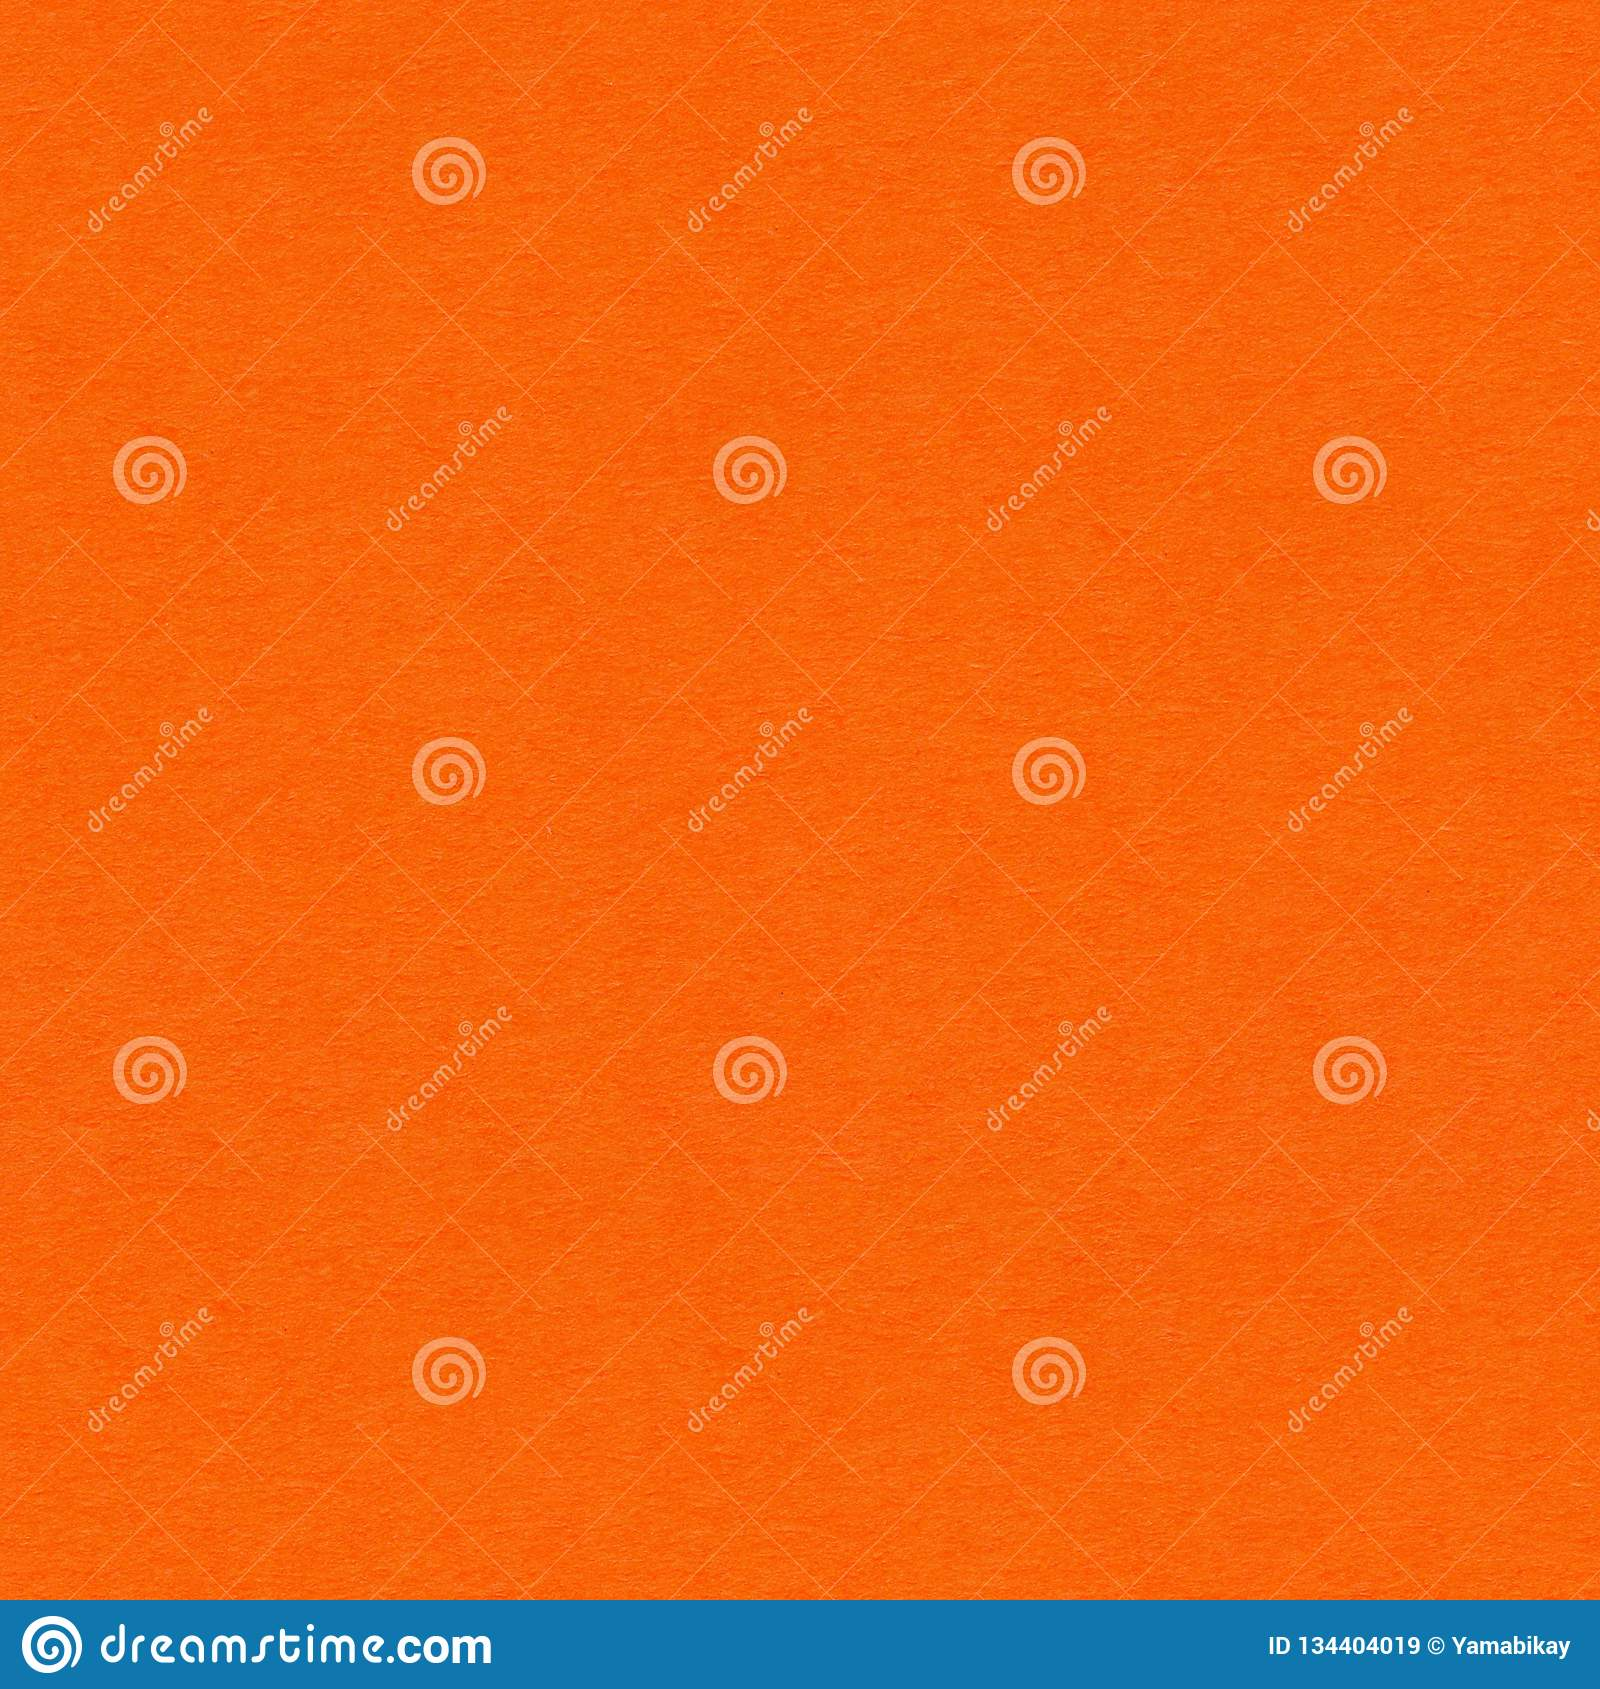 Wallpaper Cement Orange Background Seamless Square Texture